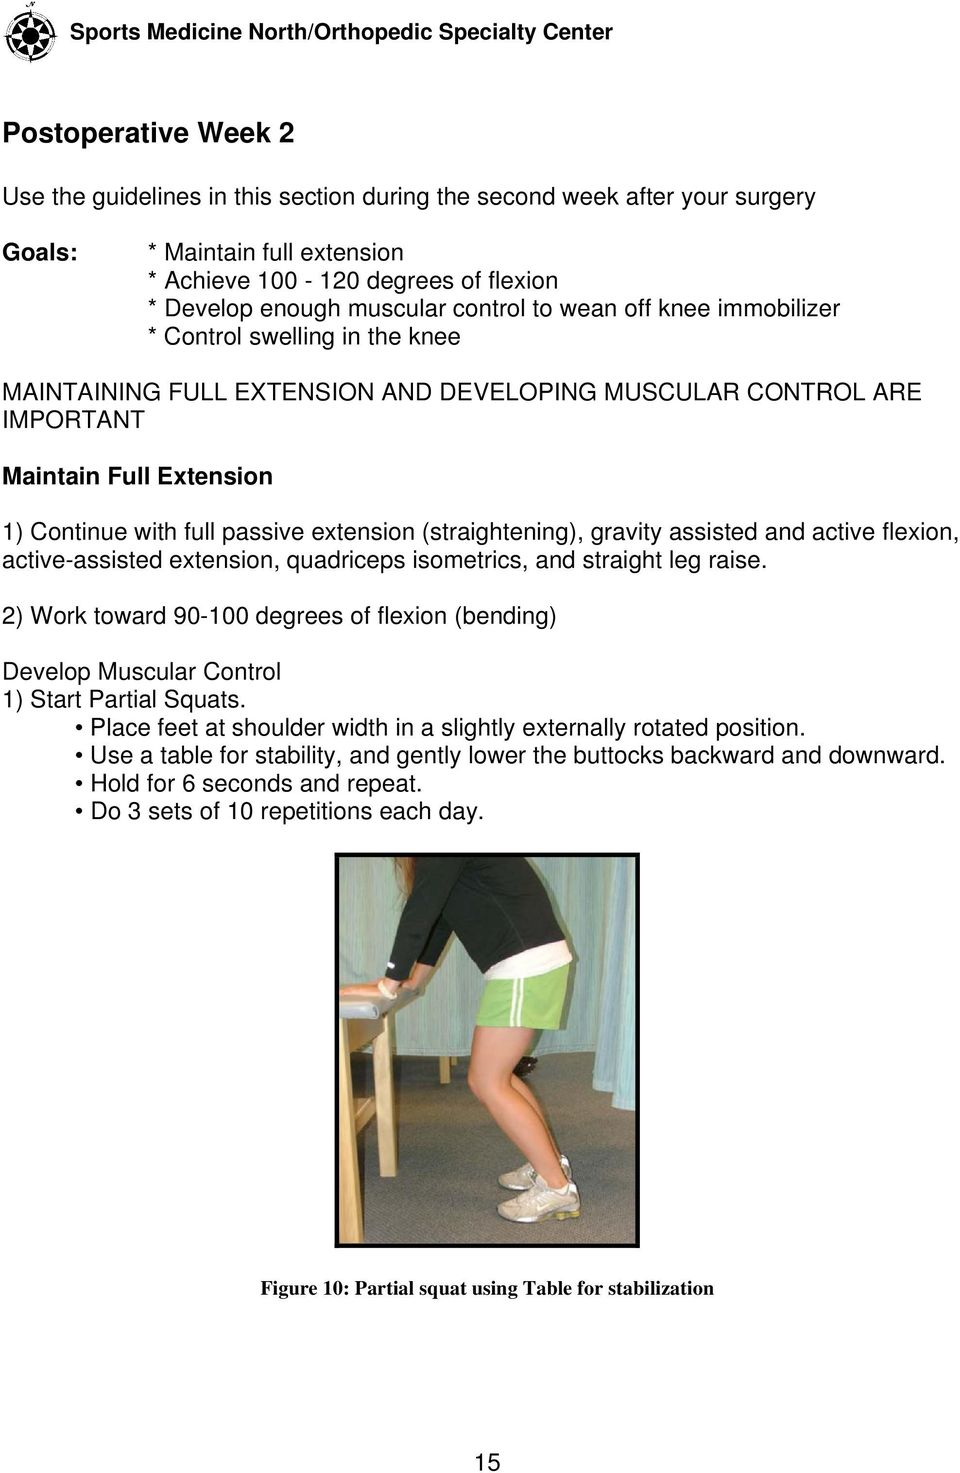 Extension 1) Continue with full passive extension (straightening), gravity assisted and active flexion, active-assisted extension, quadriceps isometrics, and straight leg raise.